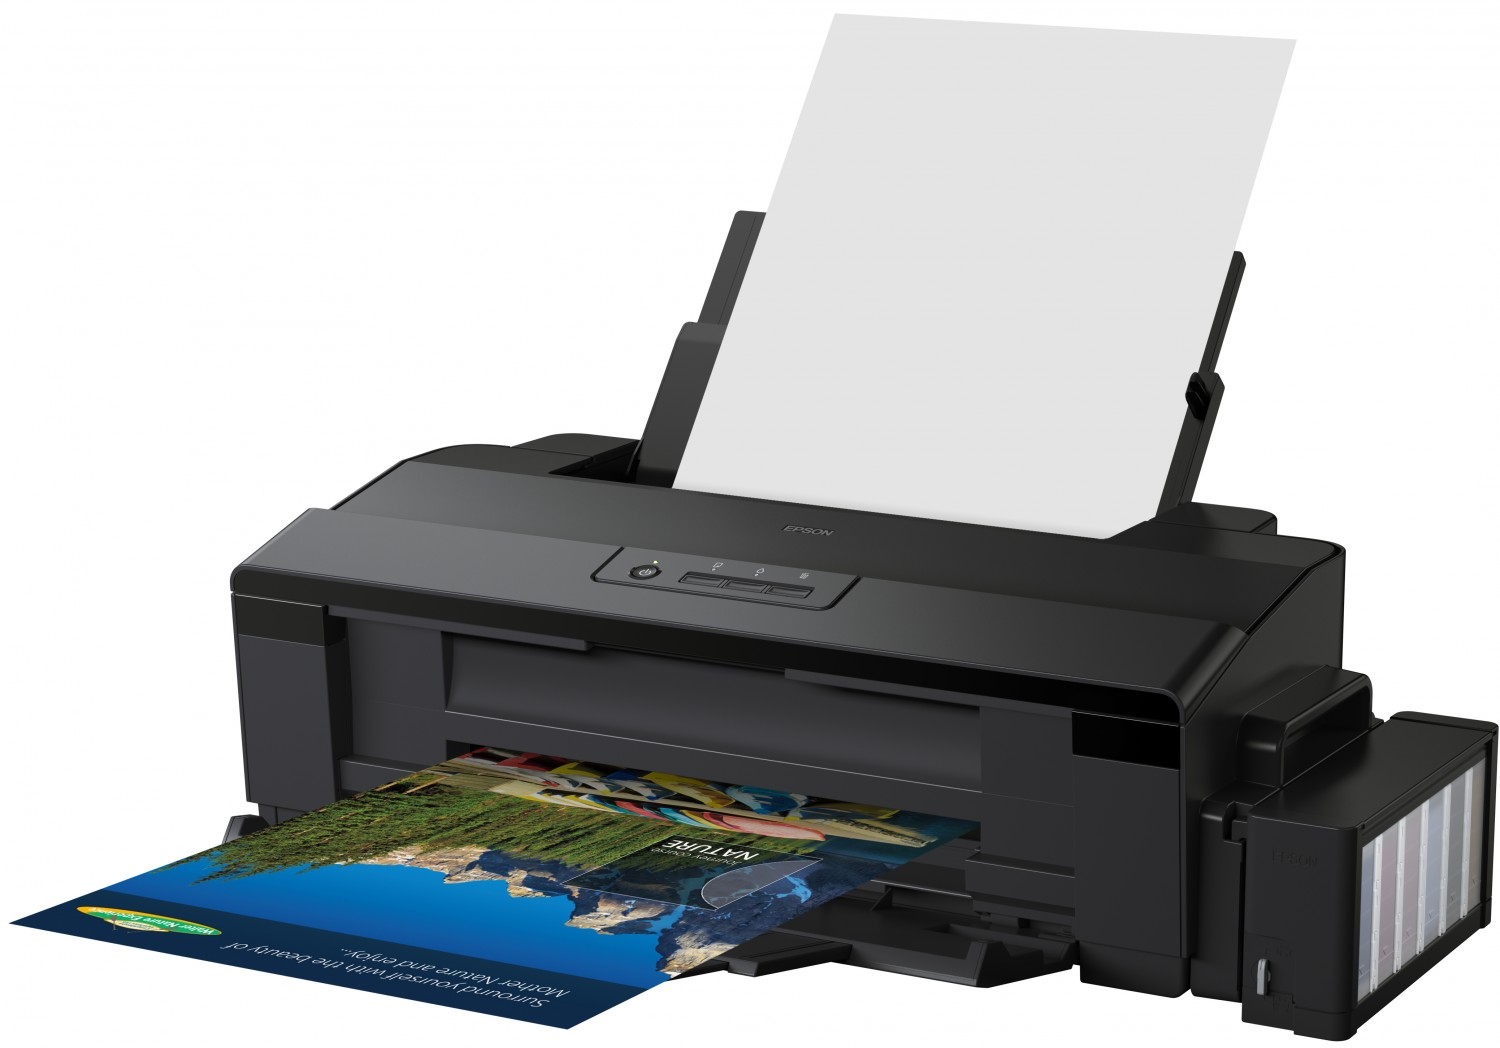 Driver Epson L1800 Ubuntu 19.04 How to Download and Install -  Featured